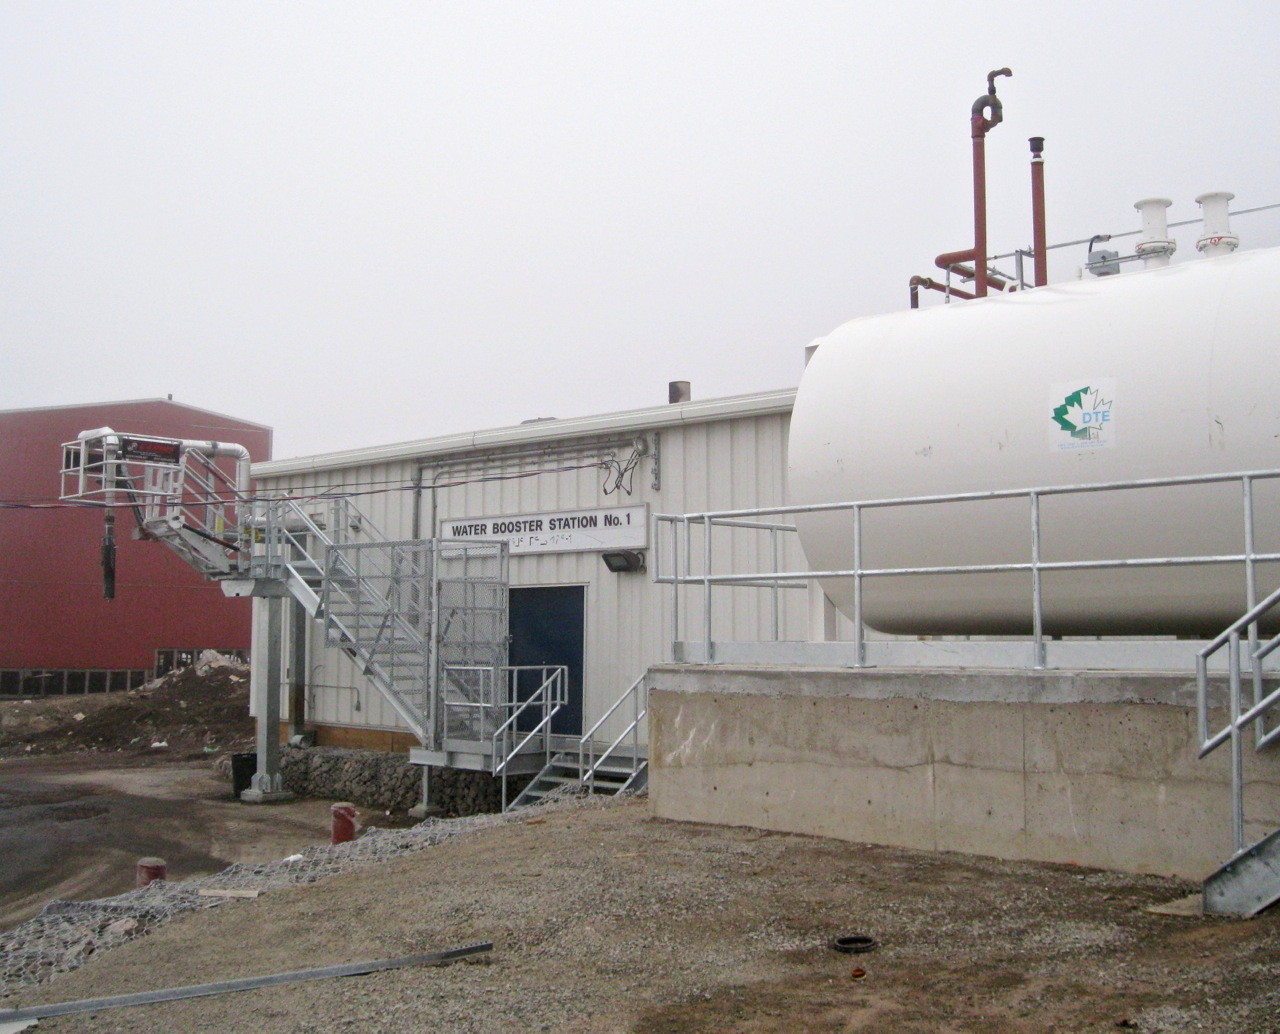 The city of Iqaluit's water booster station, pictured, feeds the city with water which meets federal and territorial government standards, but the wastewater flowing out into Koojesse Inlet does not. The city must upgrade its sewer and solid waste facilities to renew its water license, which expired in 2012. (PHOTO BY PETER VARGA)